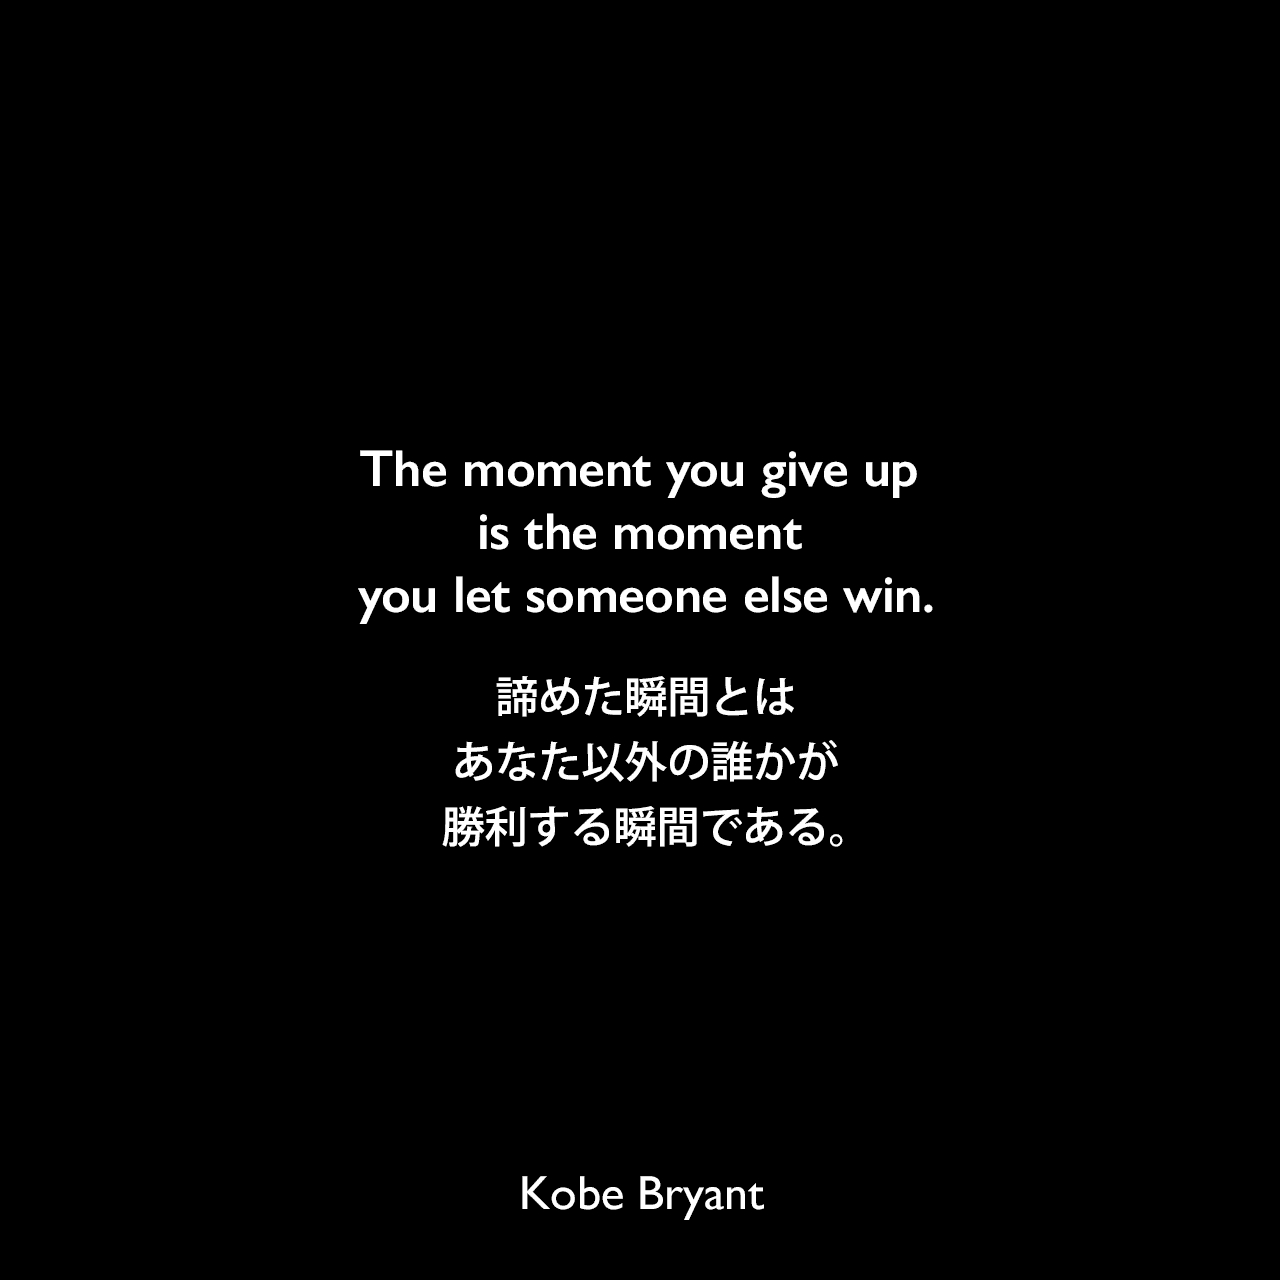 The moment you give up is the moment you let someone else win.諦めた瞬間とは、あなた以外の誰かが勝利する瞬間である。